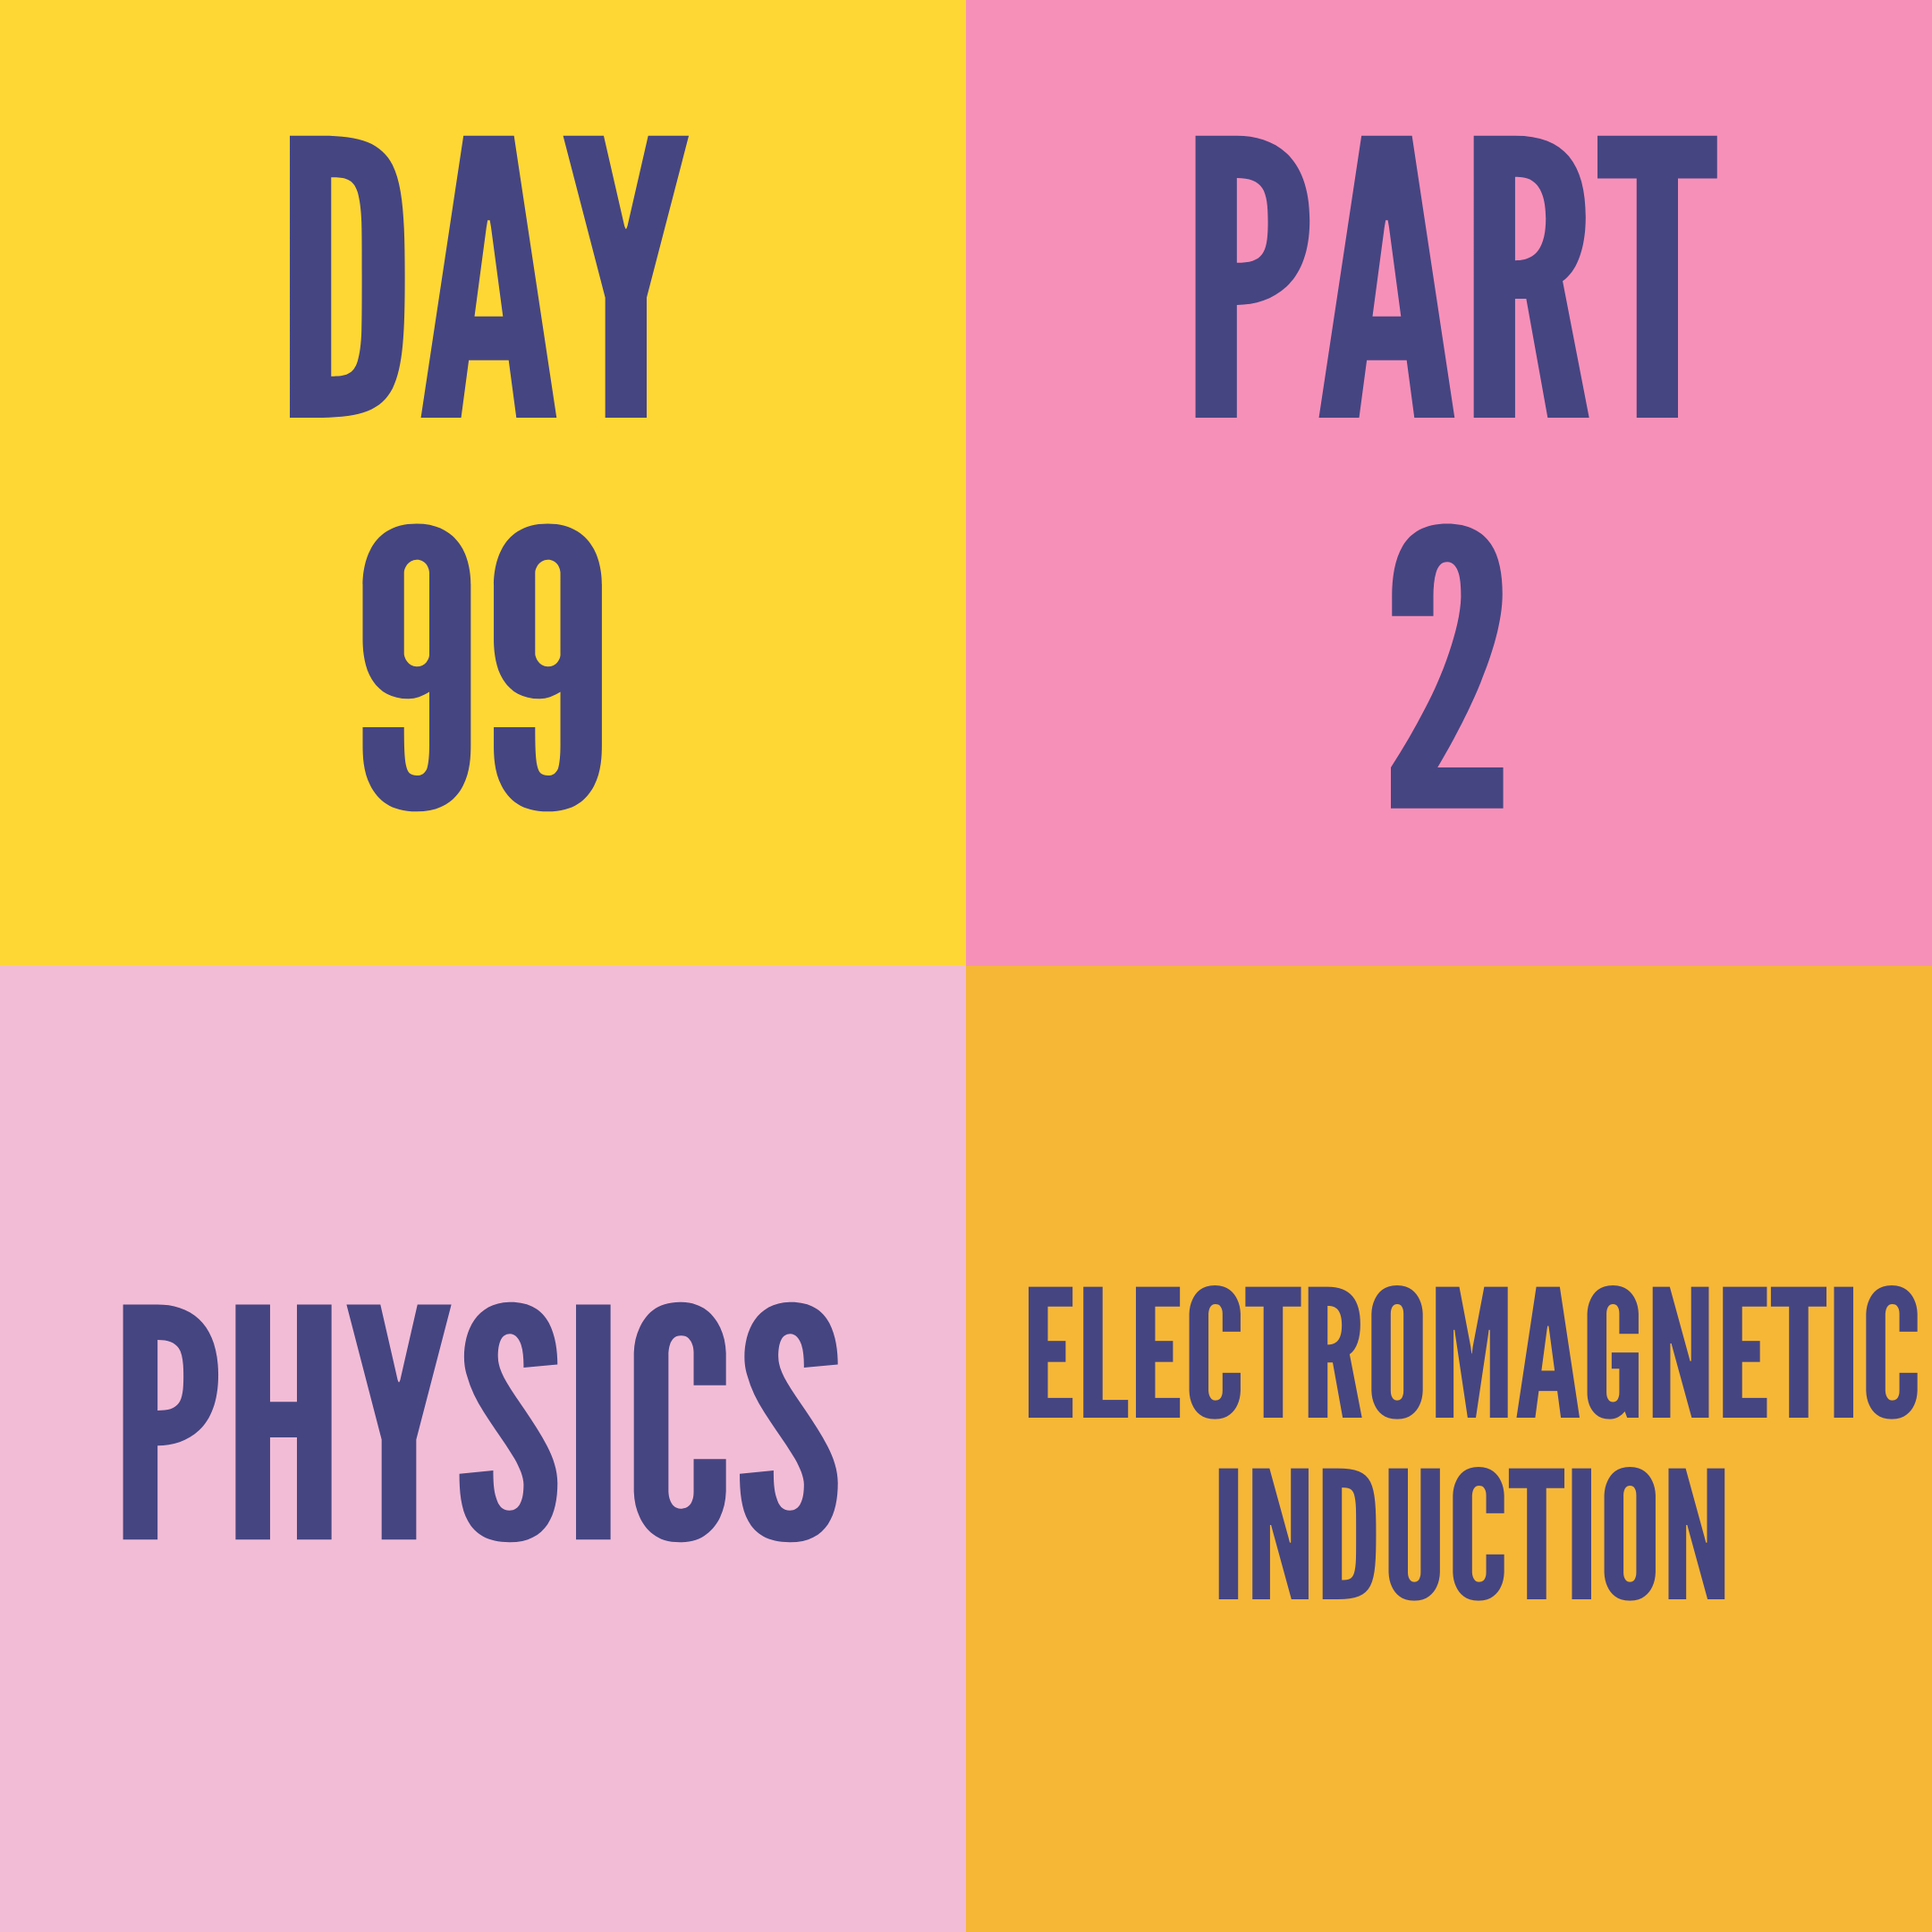 DAY-99 PART-2 ELECTROMAGNETIC INDUCTION